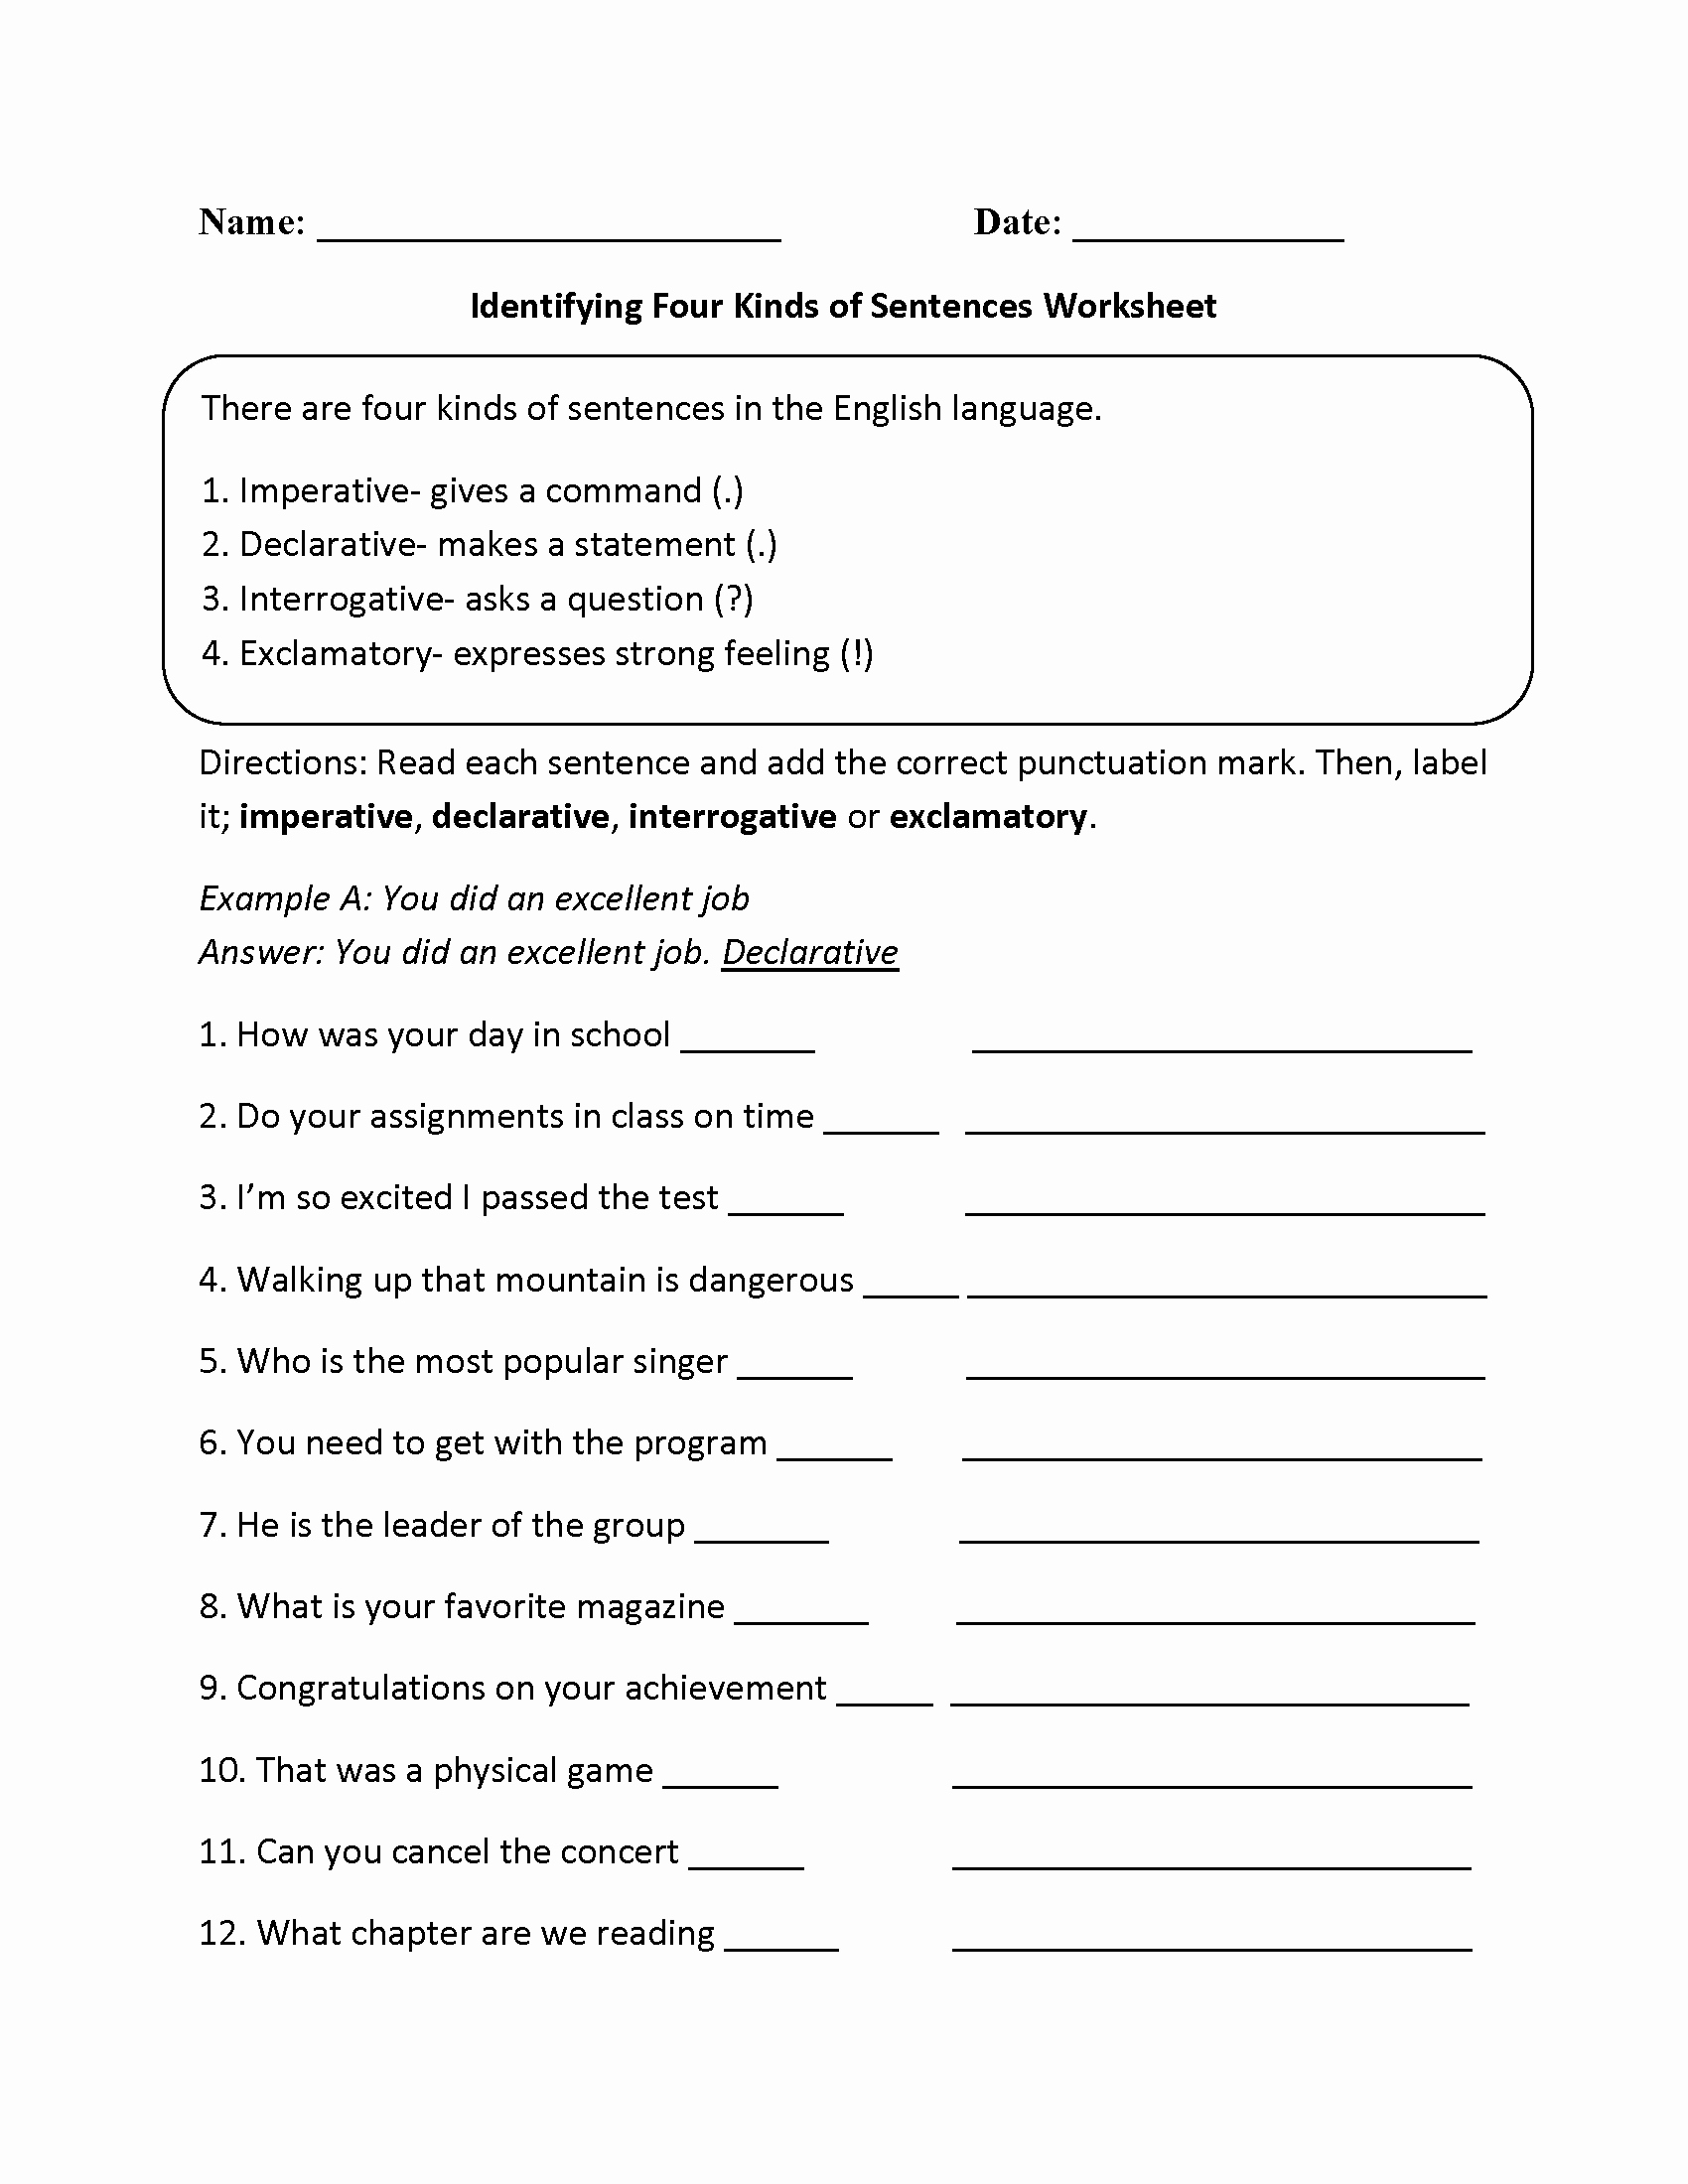 4 Types Of Sentences Worksheet Best Of Practicing Four Kinds Of Sentences Worksheet